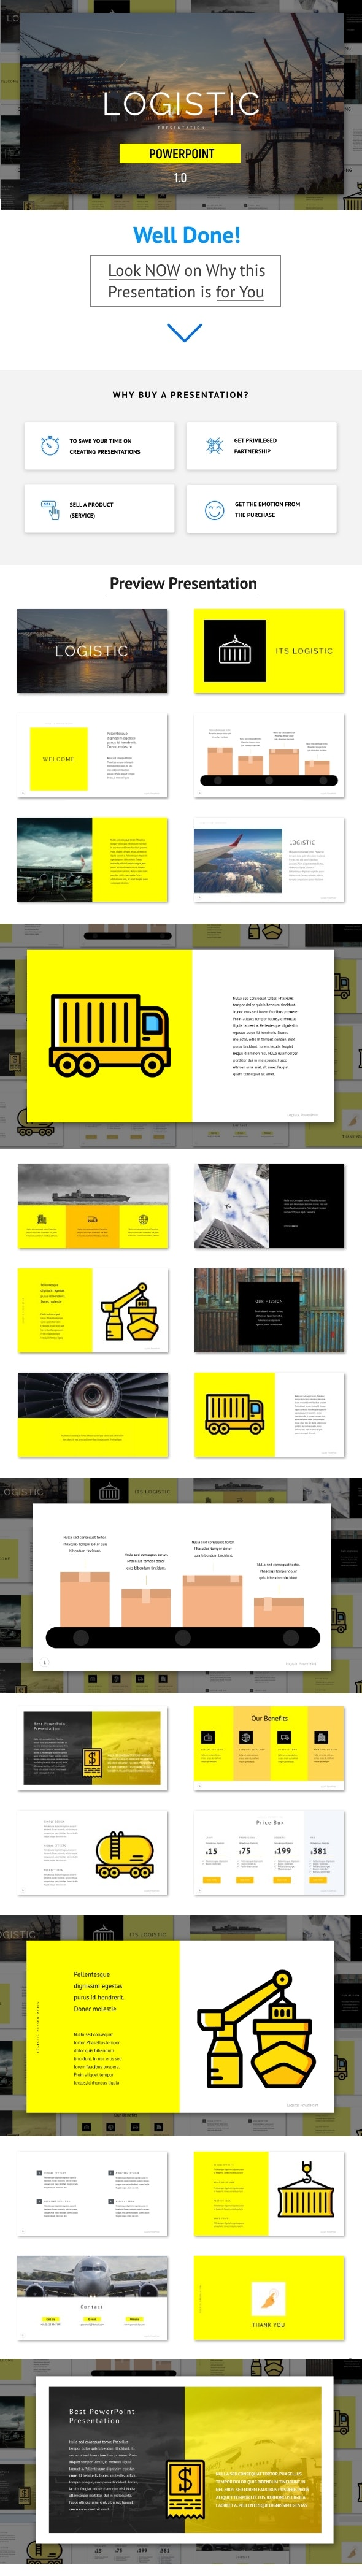 Logistic - Powerpoint Template - PowerPoint Templates Presentation Templates